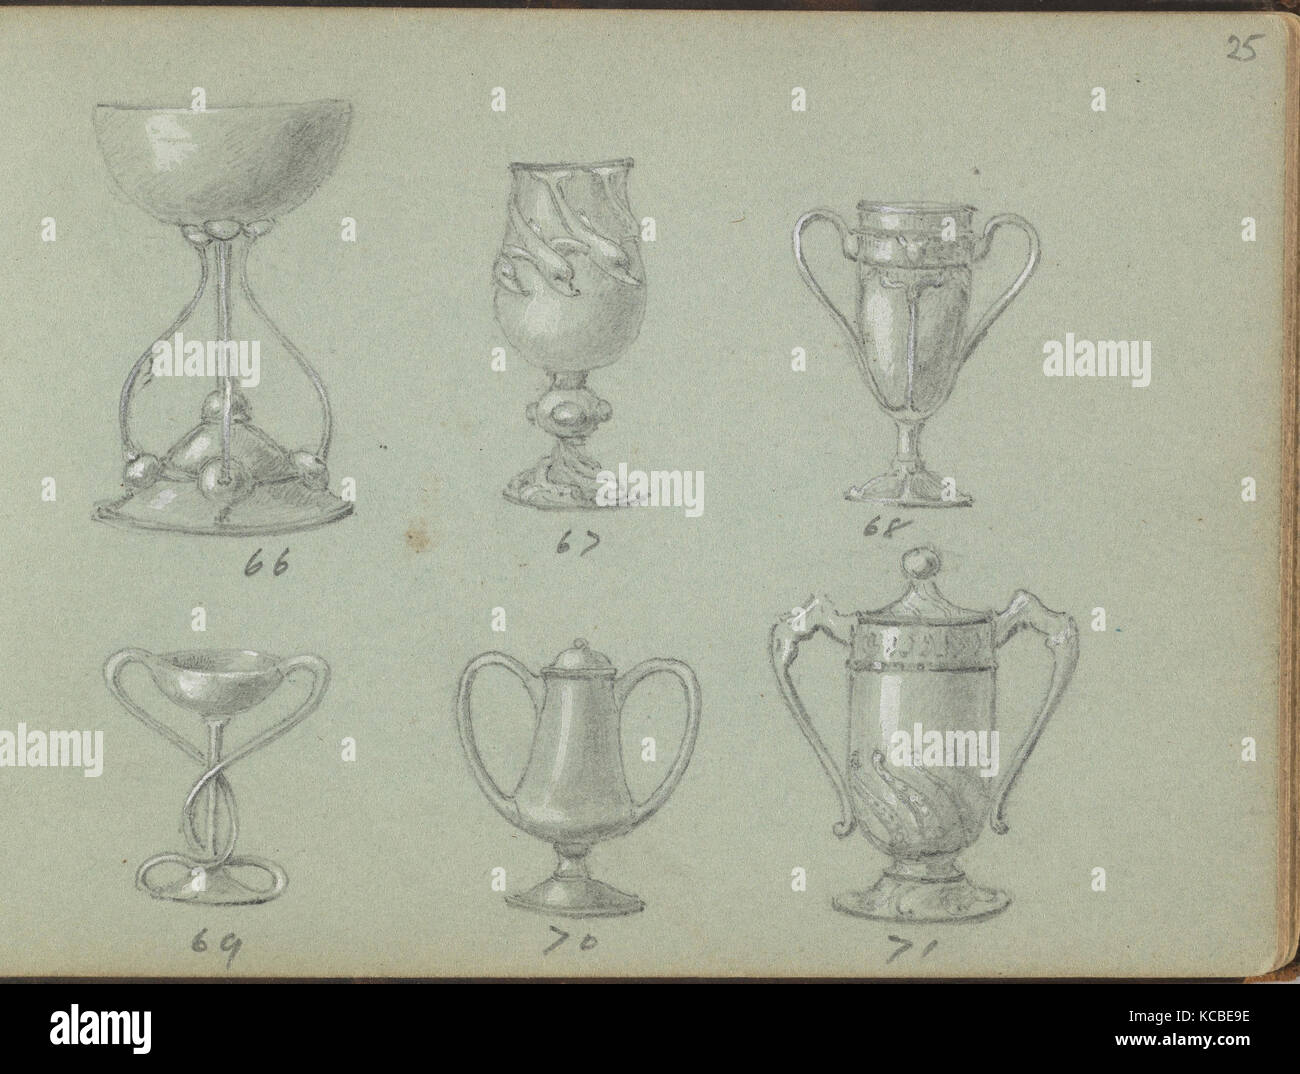 Six Designs for Drinking Vessels, Edgar Gilstrap Simpson, 1899 - Stock Image